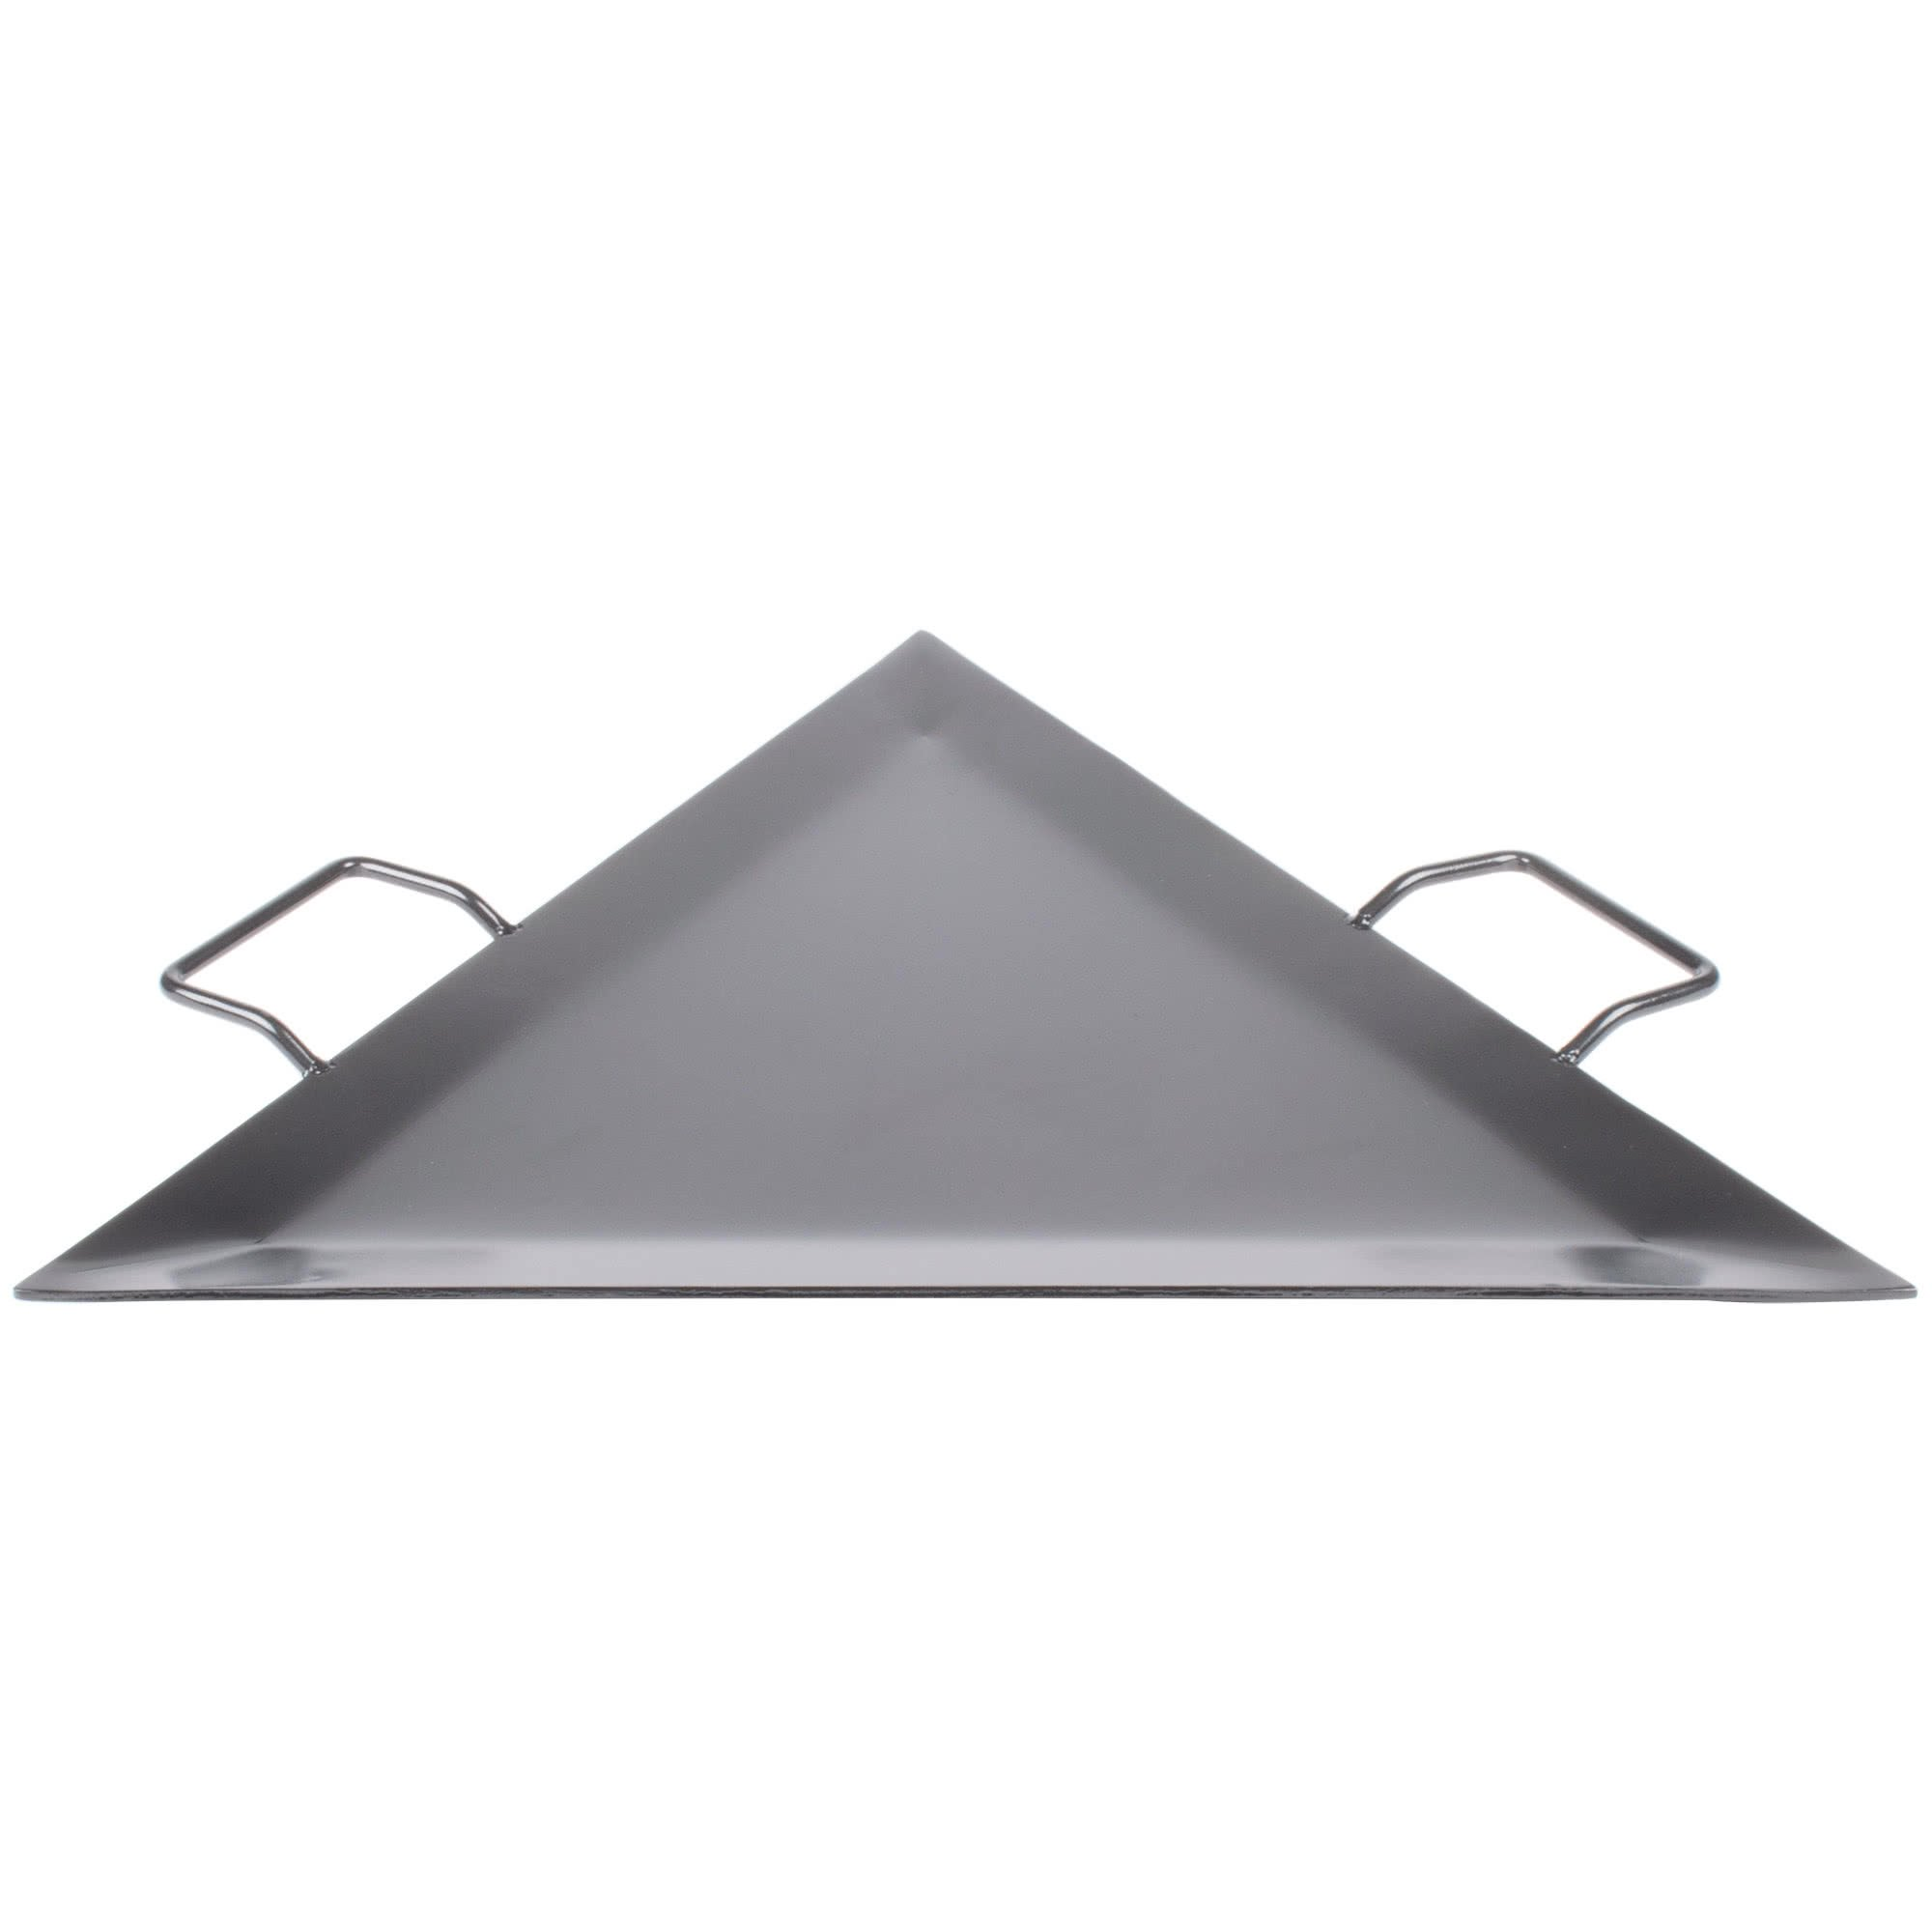 TableTop king G777 Triangle Iron Griddle